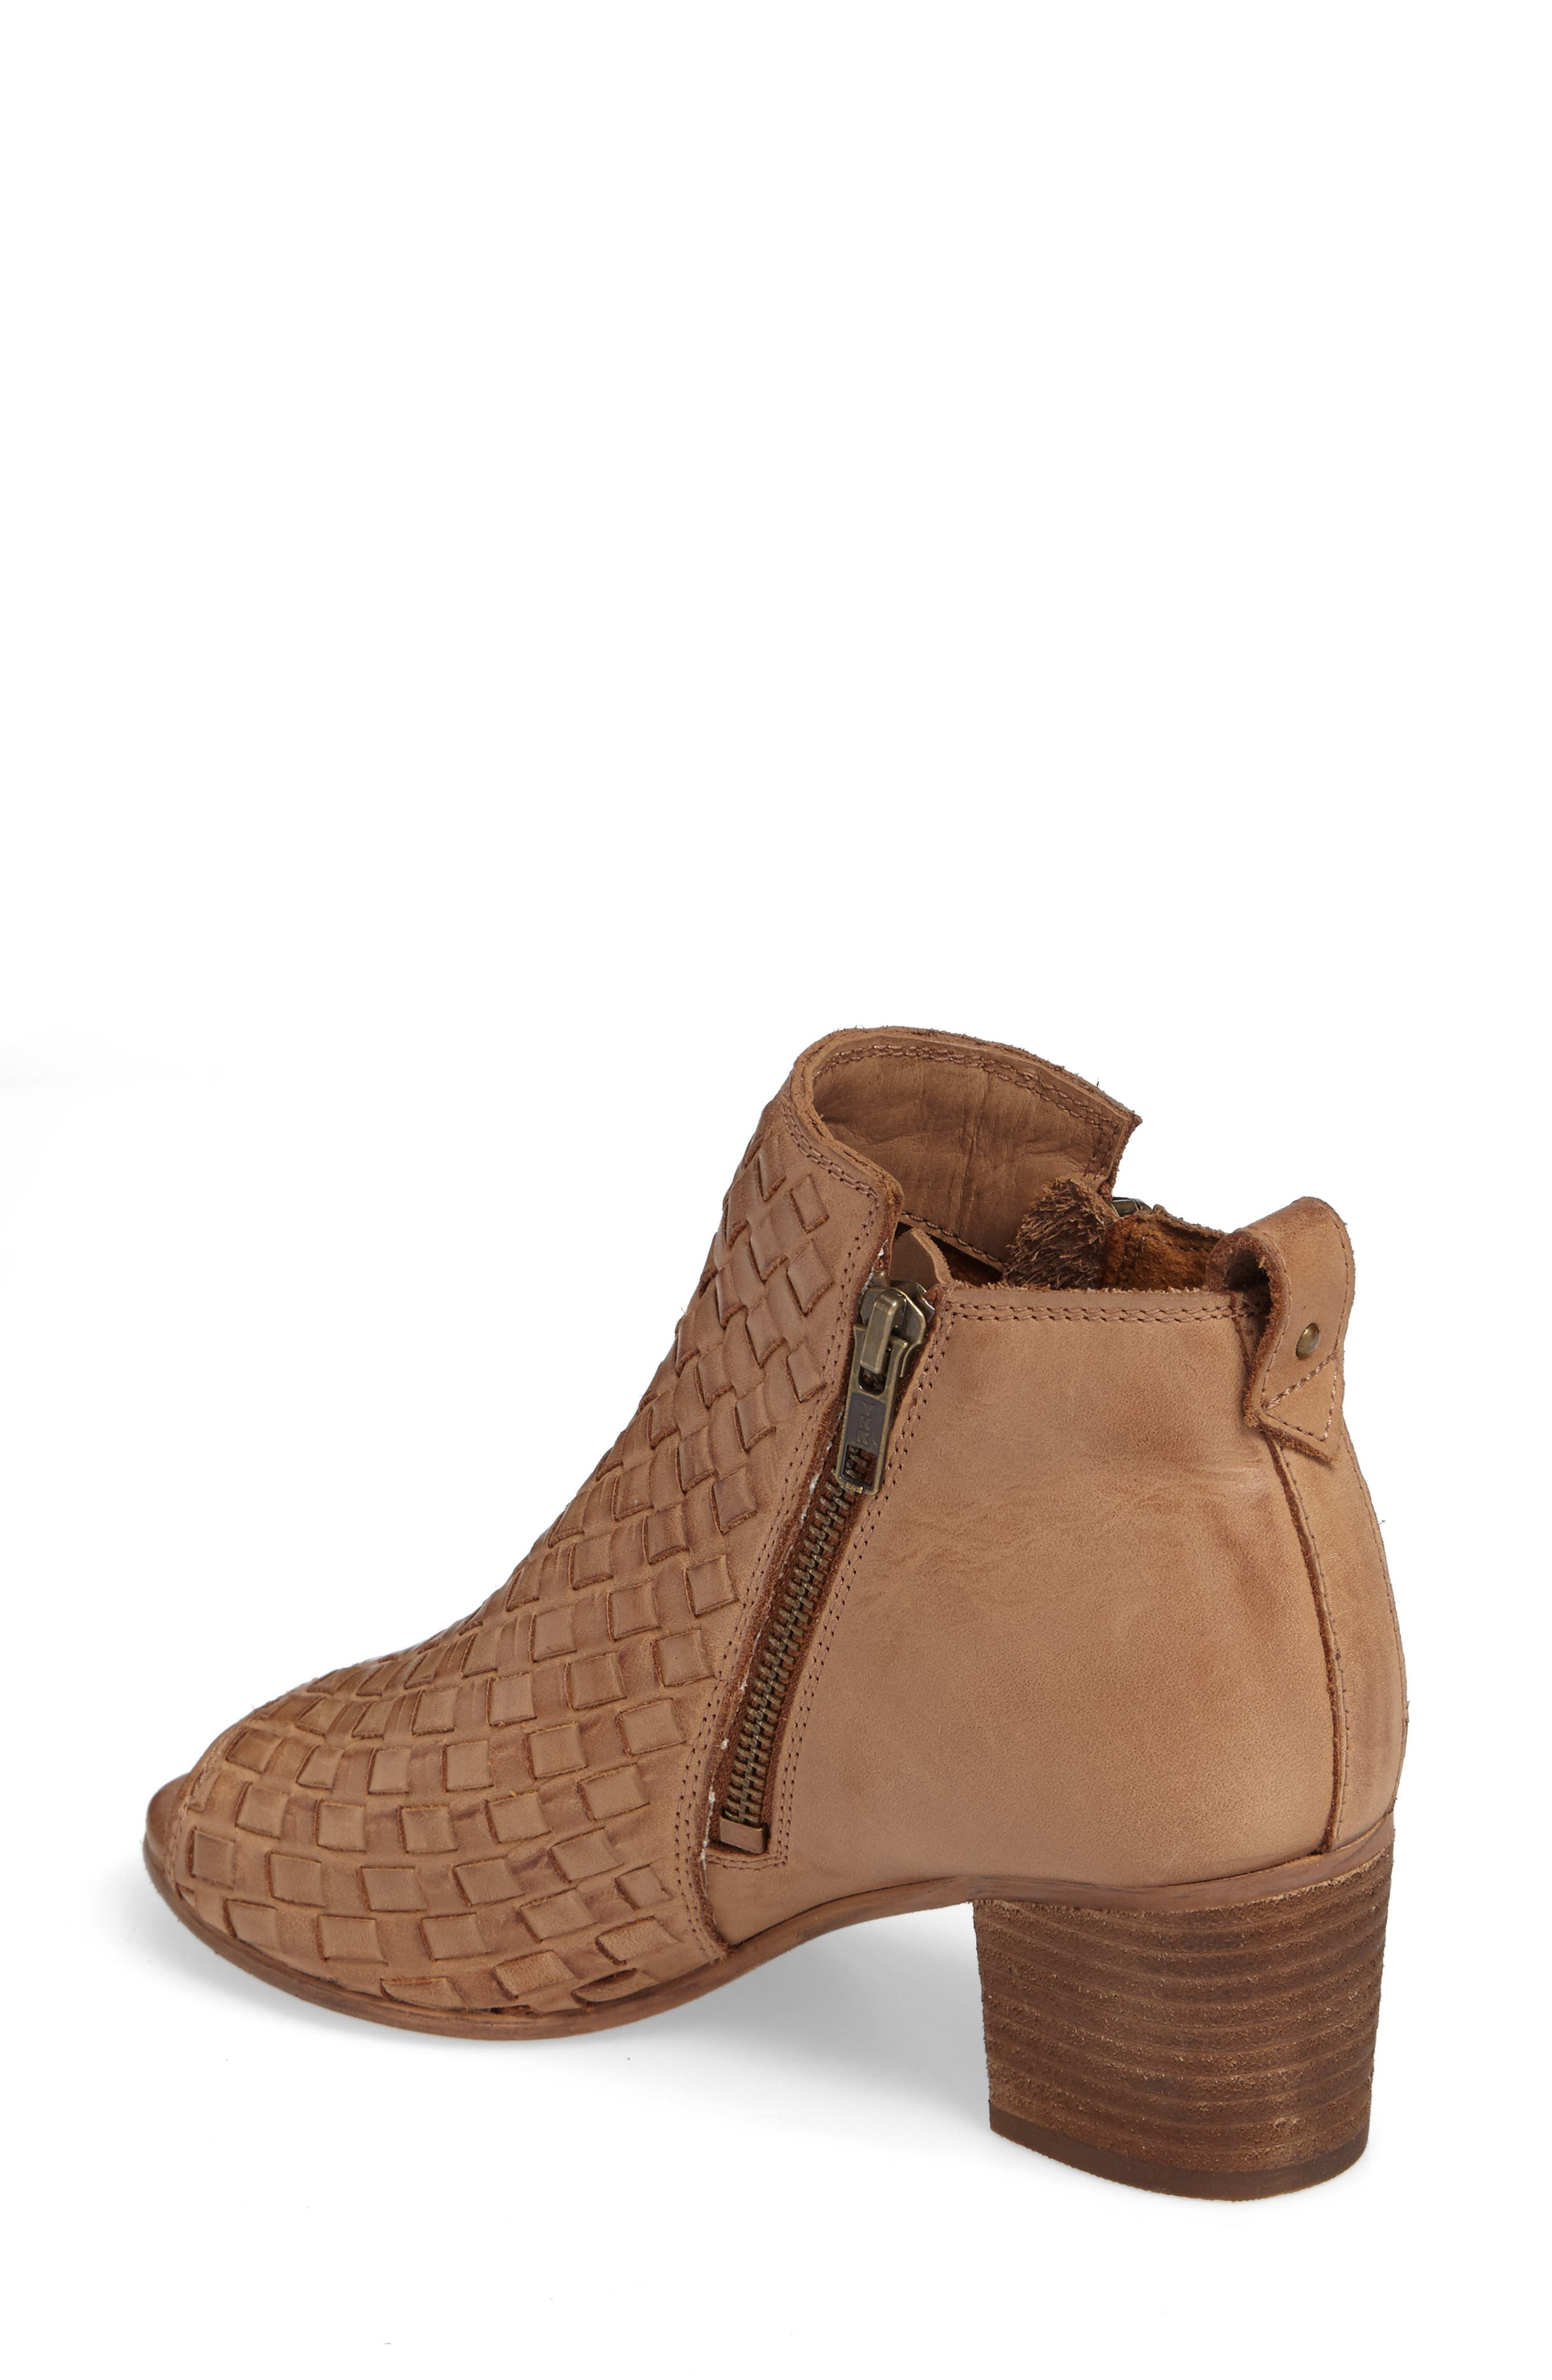 Cacey Open Toe Bootie,                             Alternate thumbnail 2, color,                             200